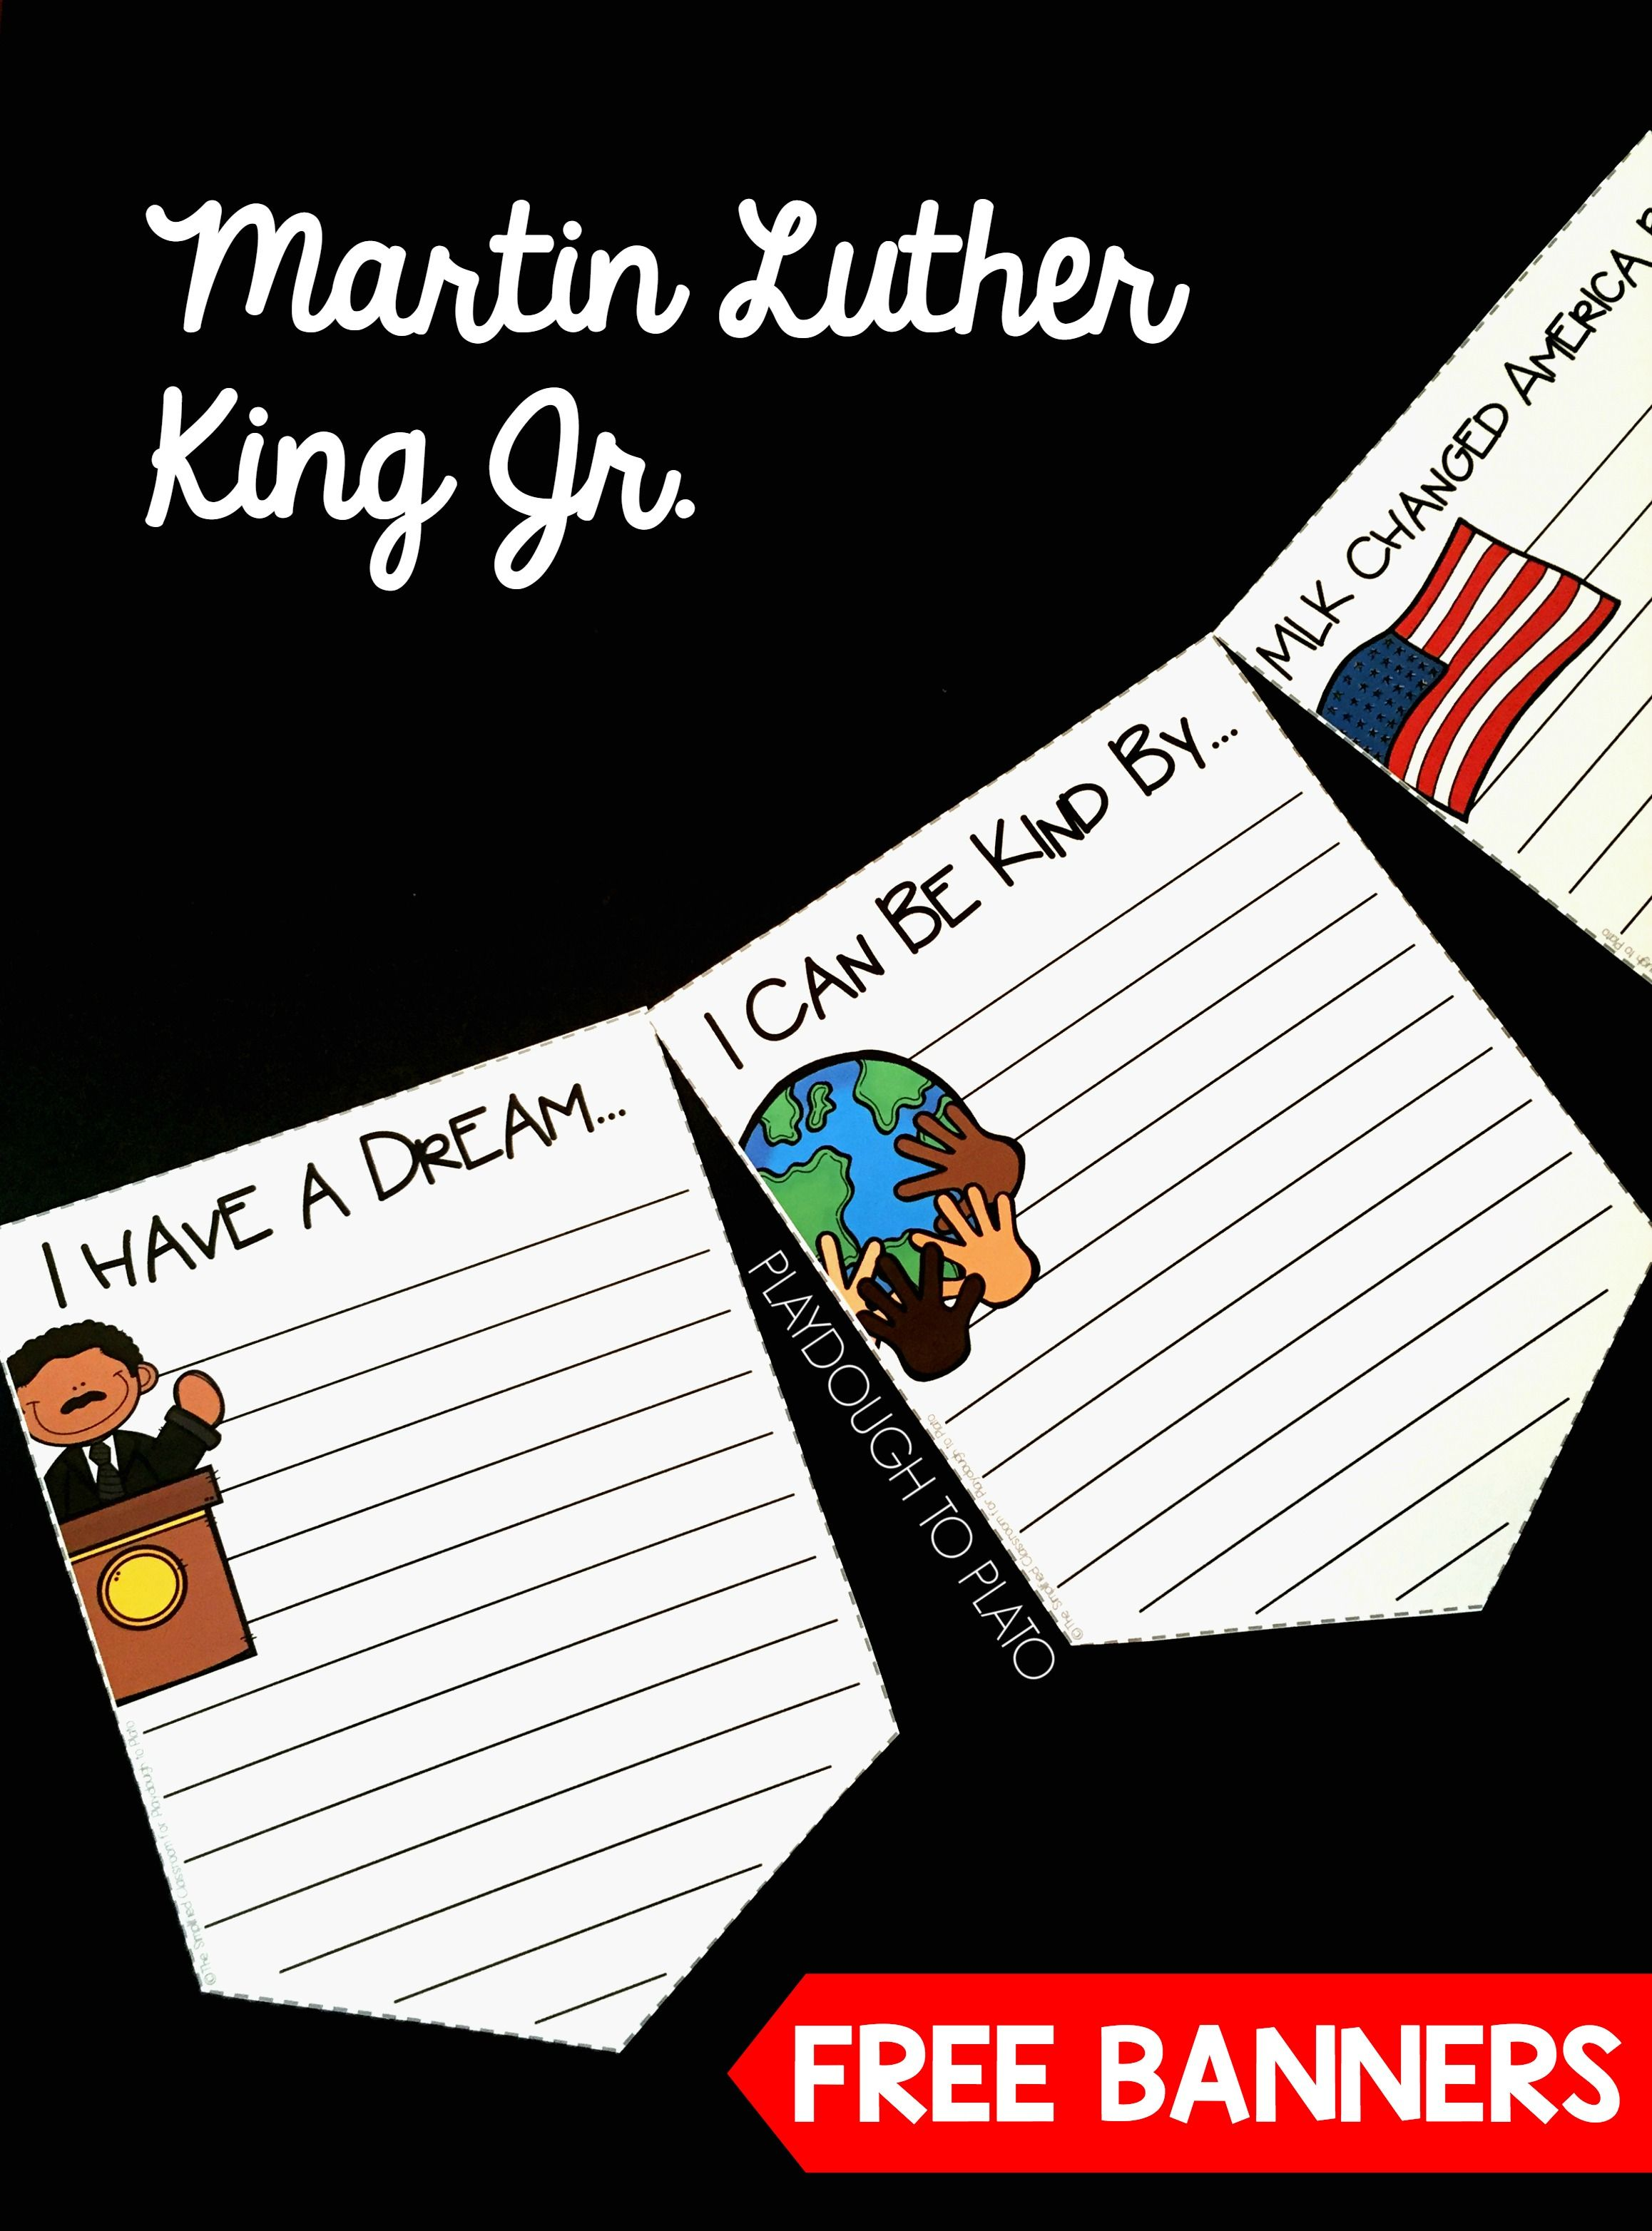 Martin Luther King Jr Banners